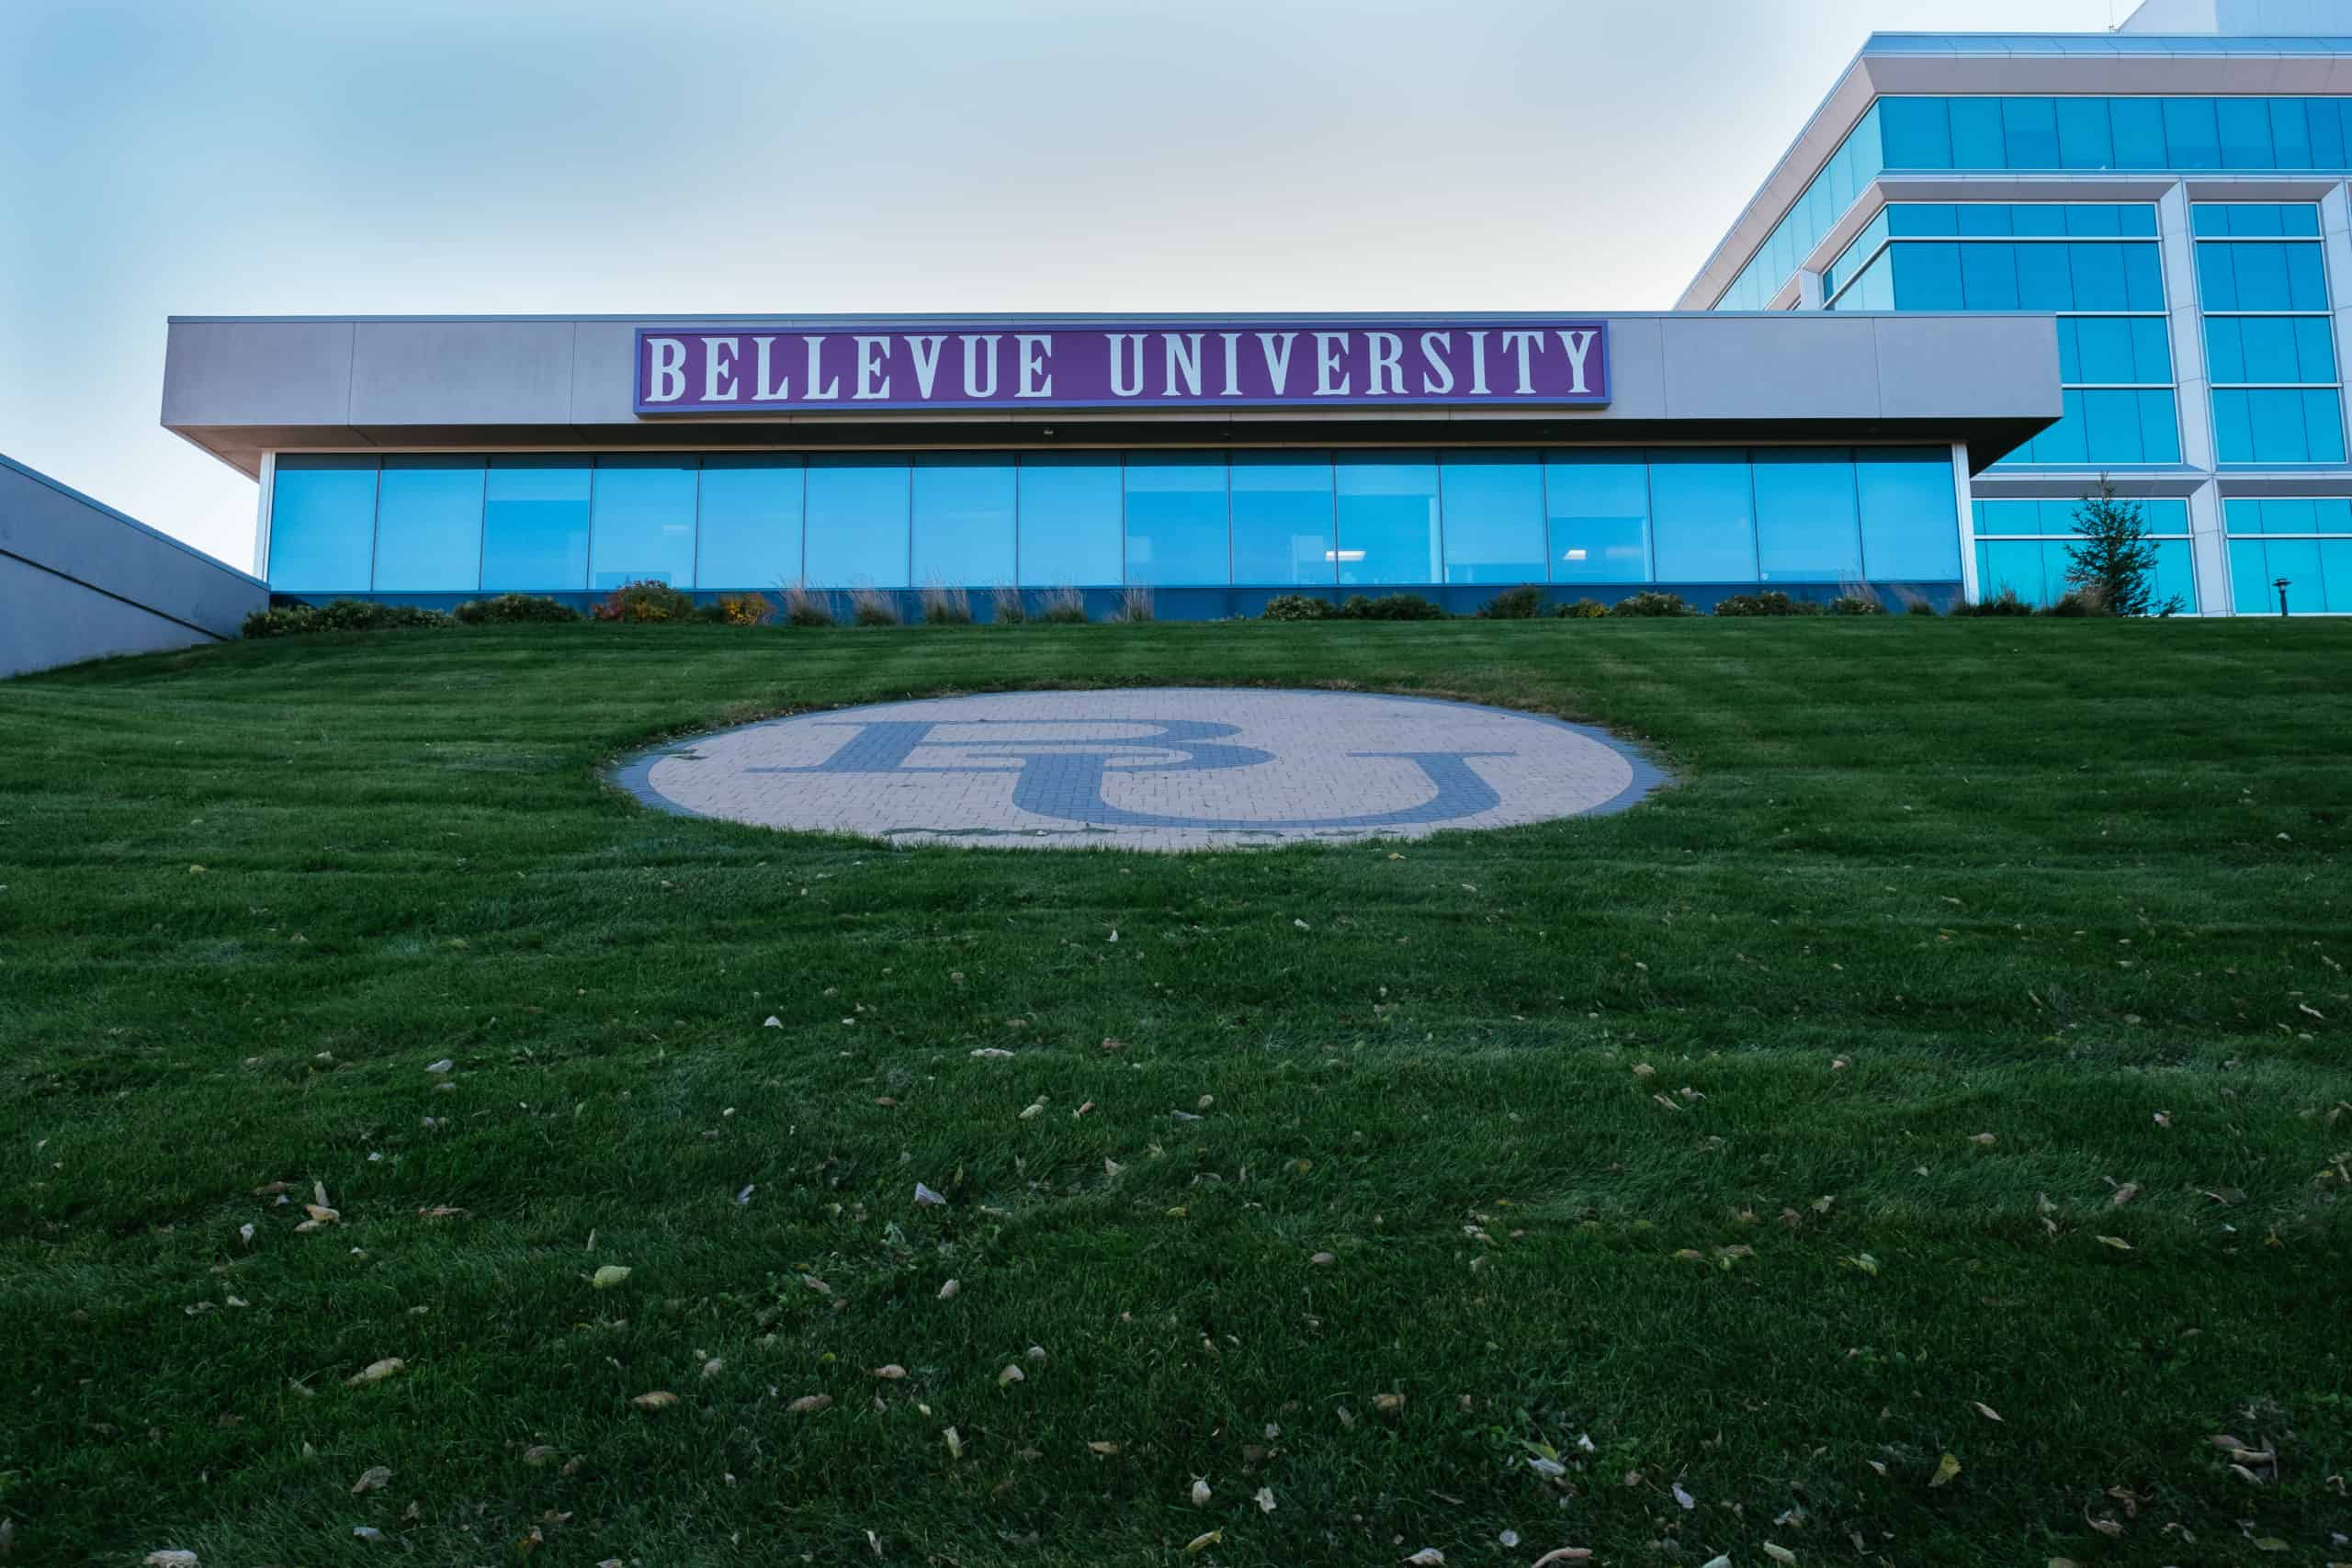 Best_Open_Admission_Colleges_Online_Bellevue_University